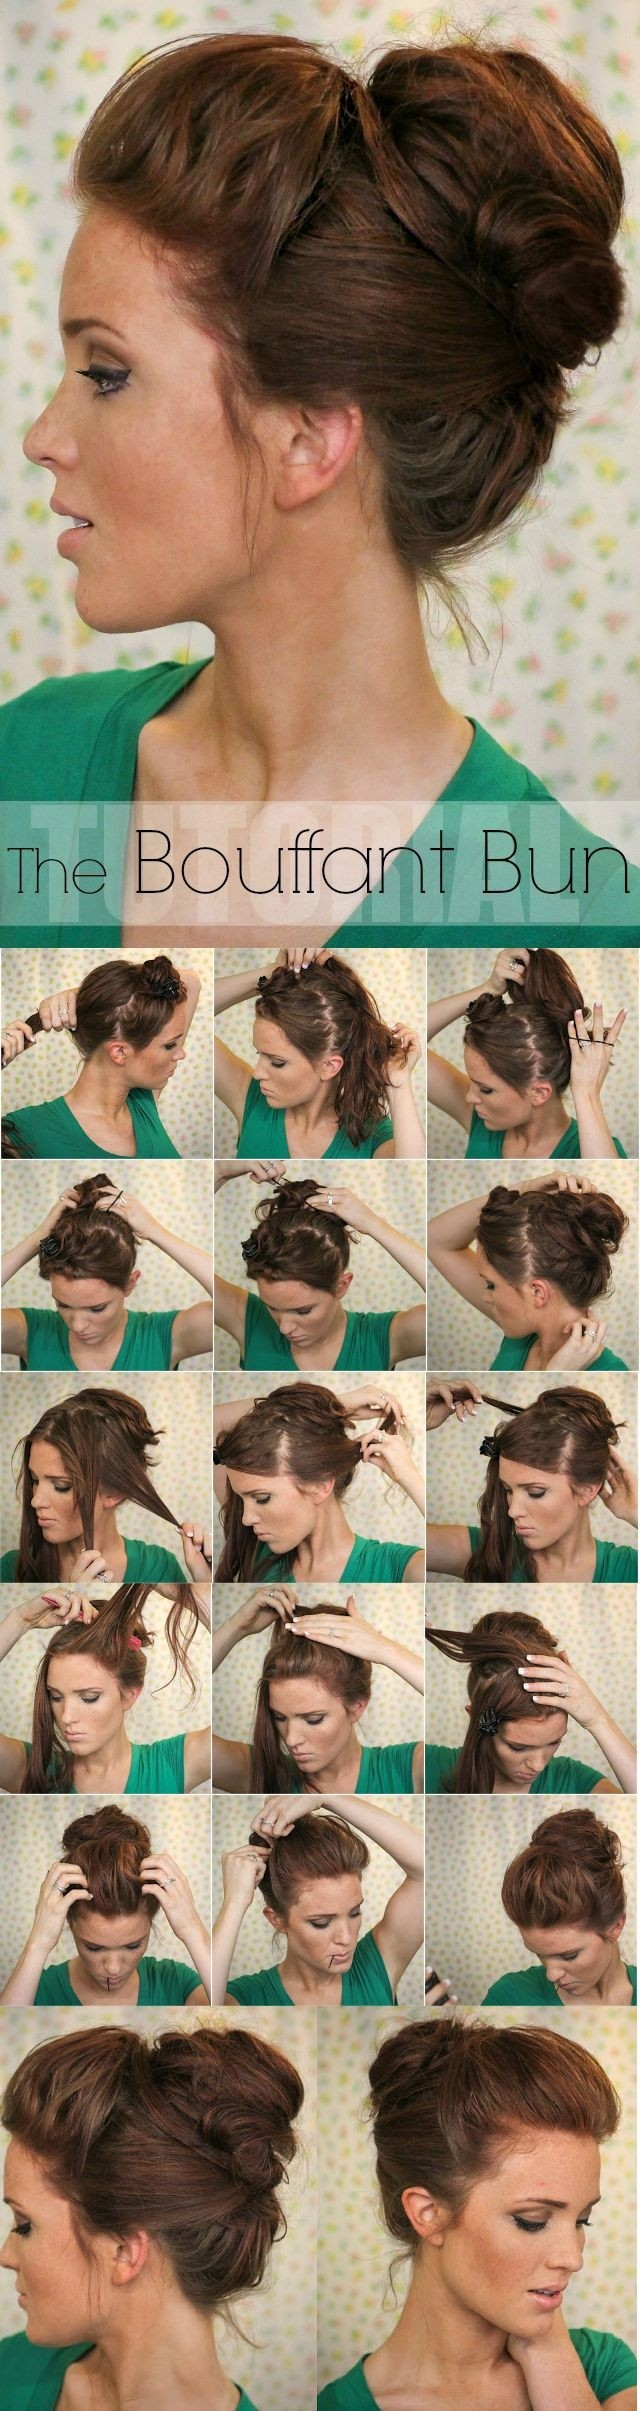 Wondrous 10 Simple Yet Stylish Updo Hairstyle Tutorials For All Occasions Short Hairstyles Gunalazisus